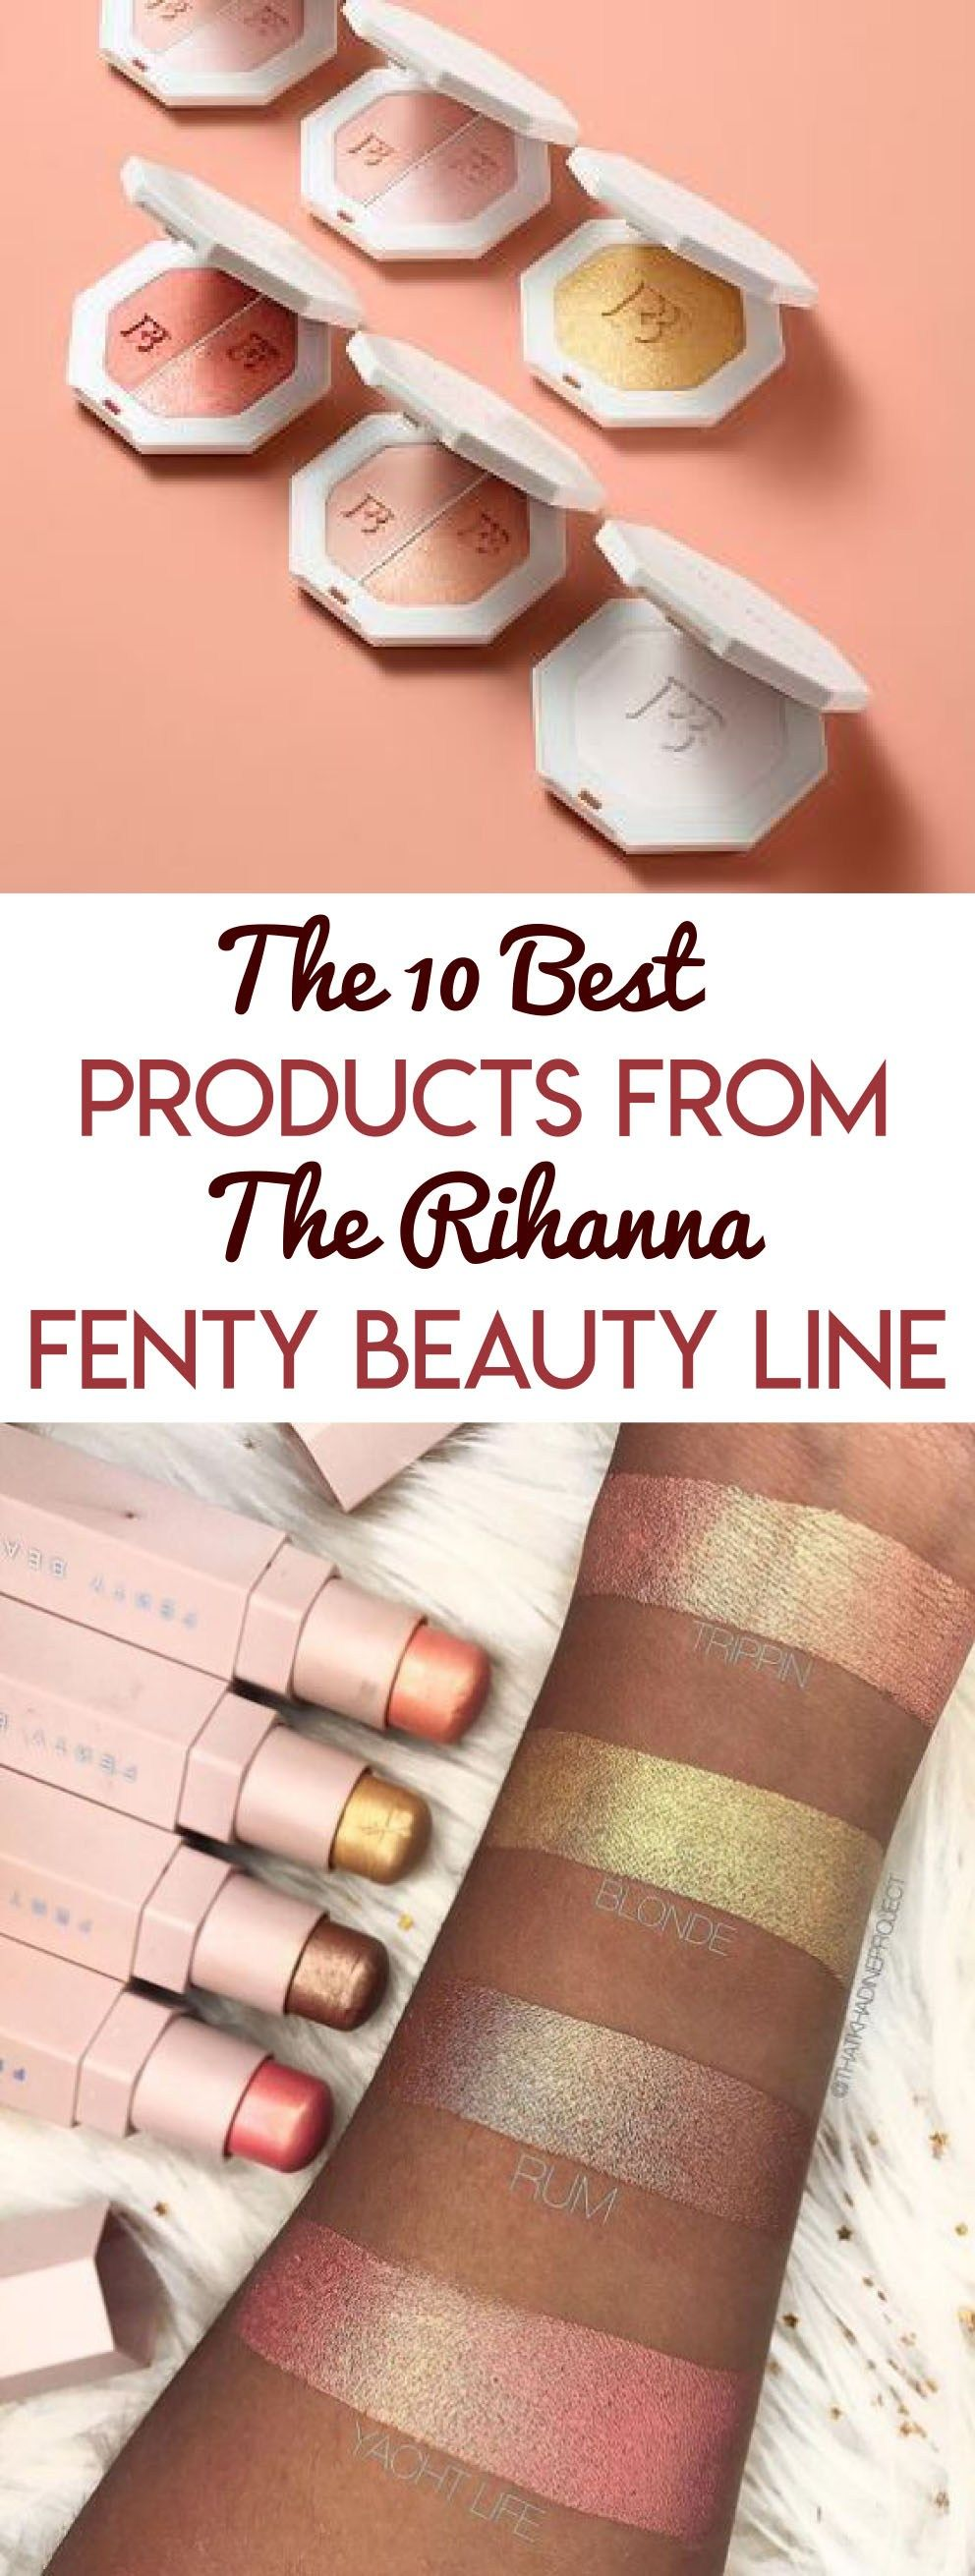 The 10 Best Products From The Rihanna Fenty Beauty Line